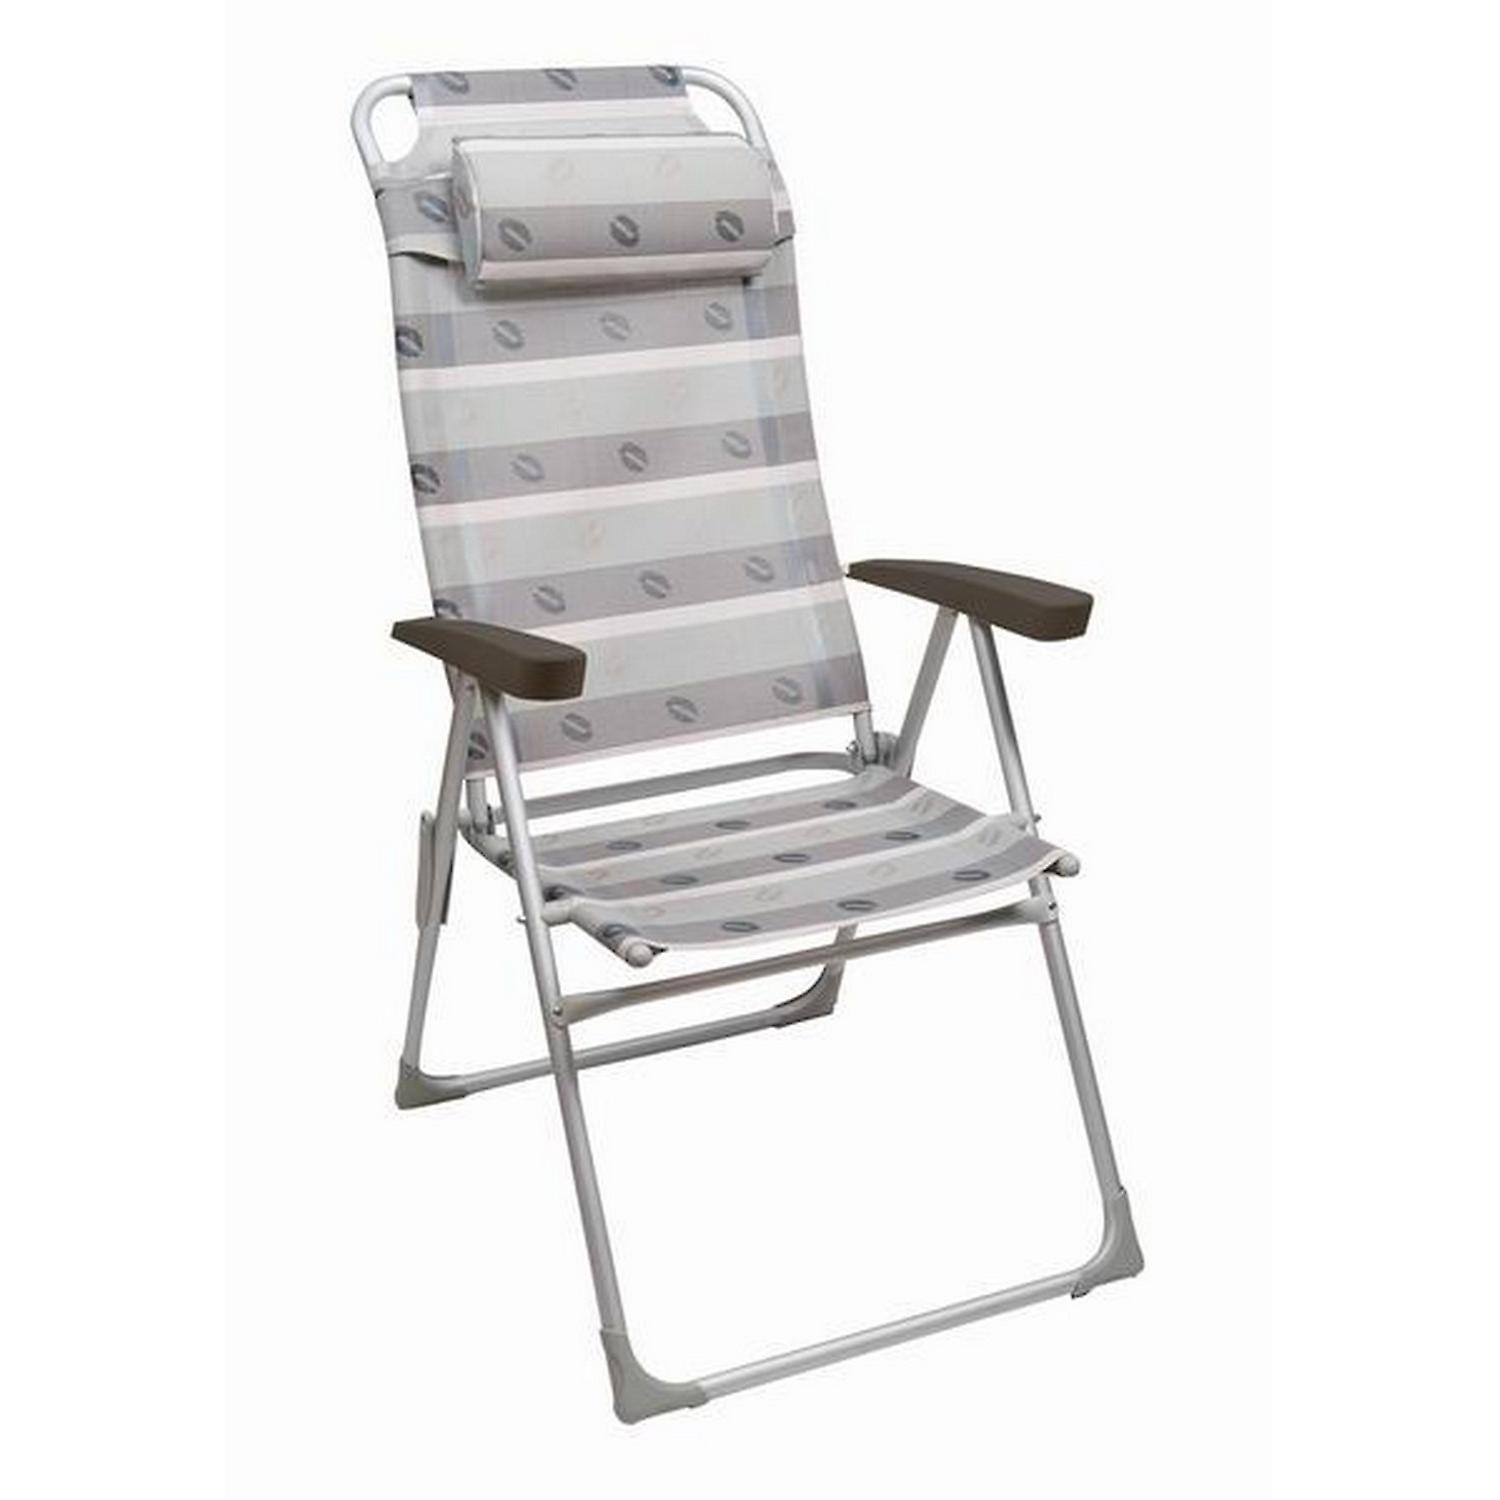 Camp 4 Malaga Compact II Graphic Print Foldable Camping Chair